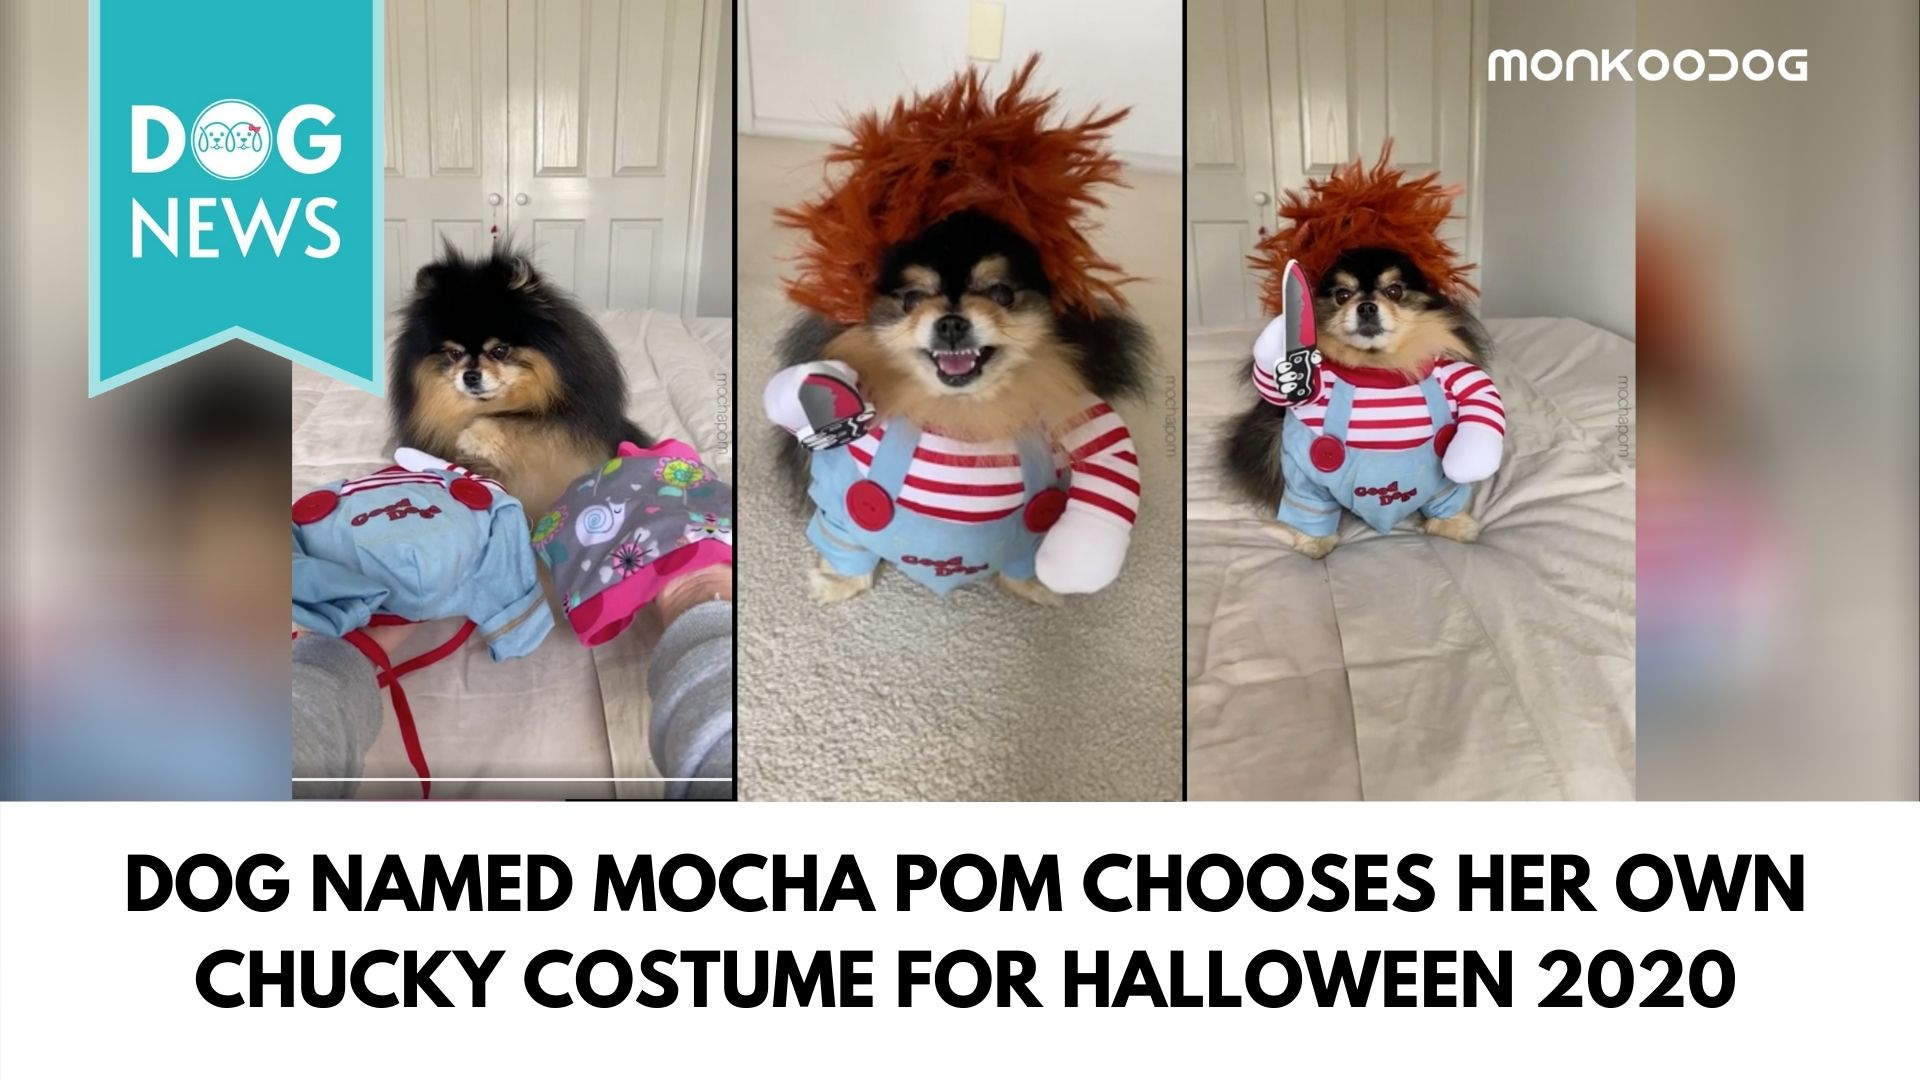 Halloween Enthusiast Dog Mocha Pom Selects Her Chucky Costume; Creates Ripples Of Laughter On The Internet